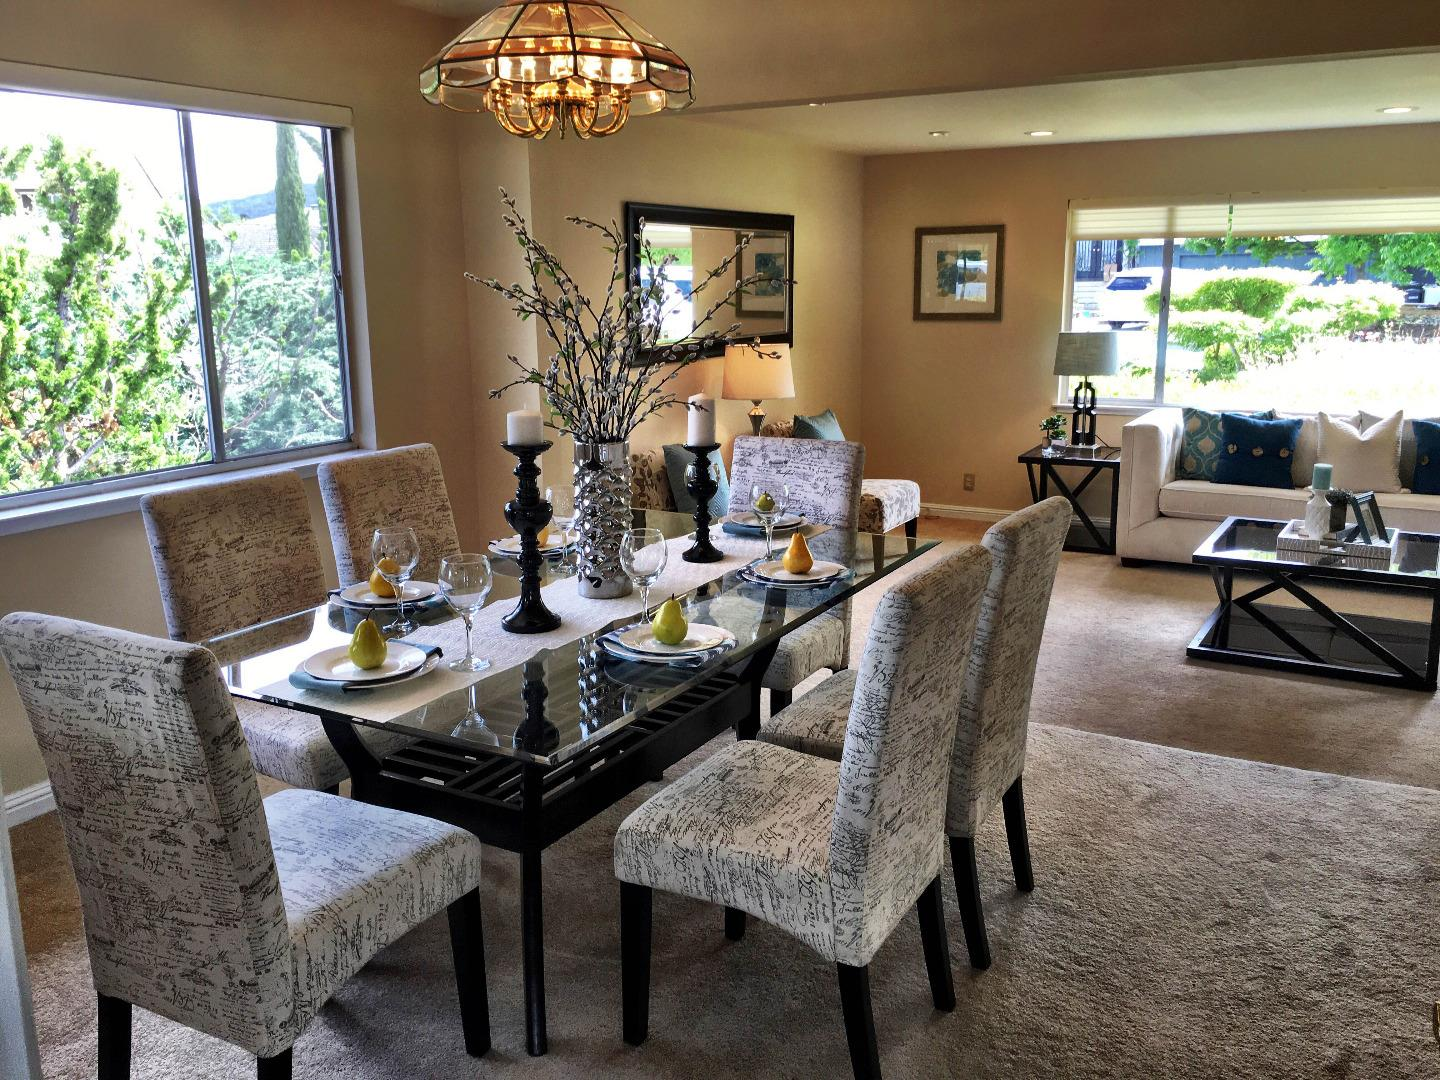 Additional photo for property listing at 880 Madonna Way  LOS ALTOS, CALIFORNIA 94024